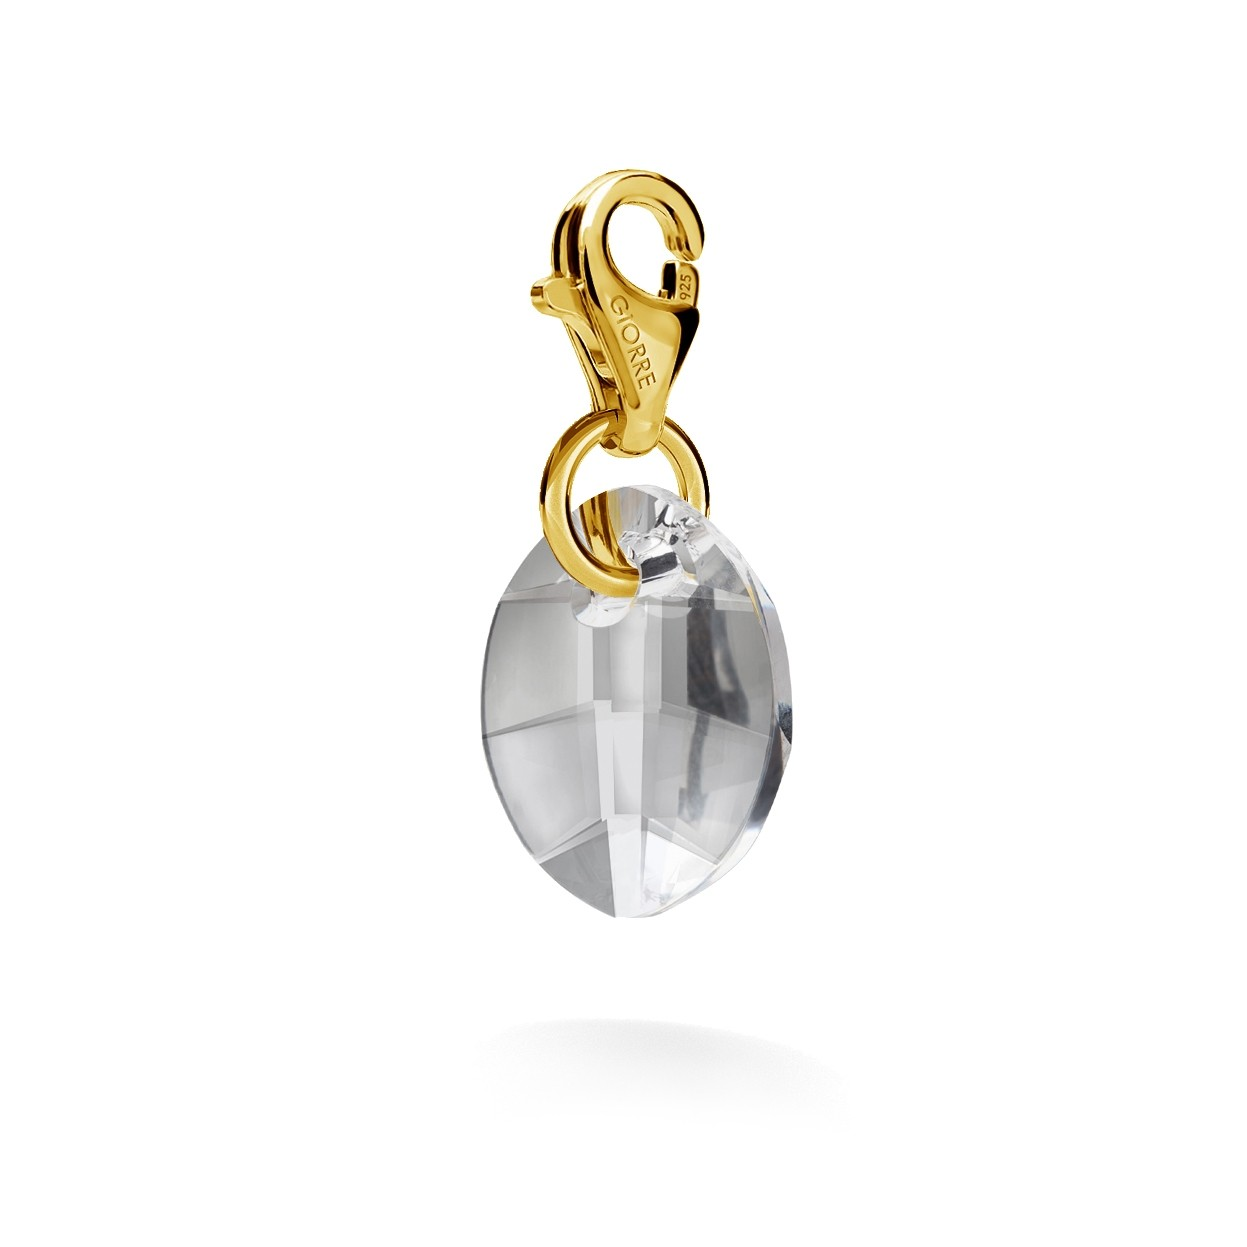 CHARM 52, SWAROVSKI 6734 MM 14 CRYSTAL, STERLING SILVER (925) RHODIUM OR GOLD PLATED